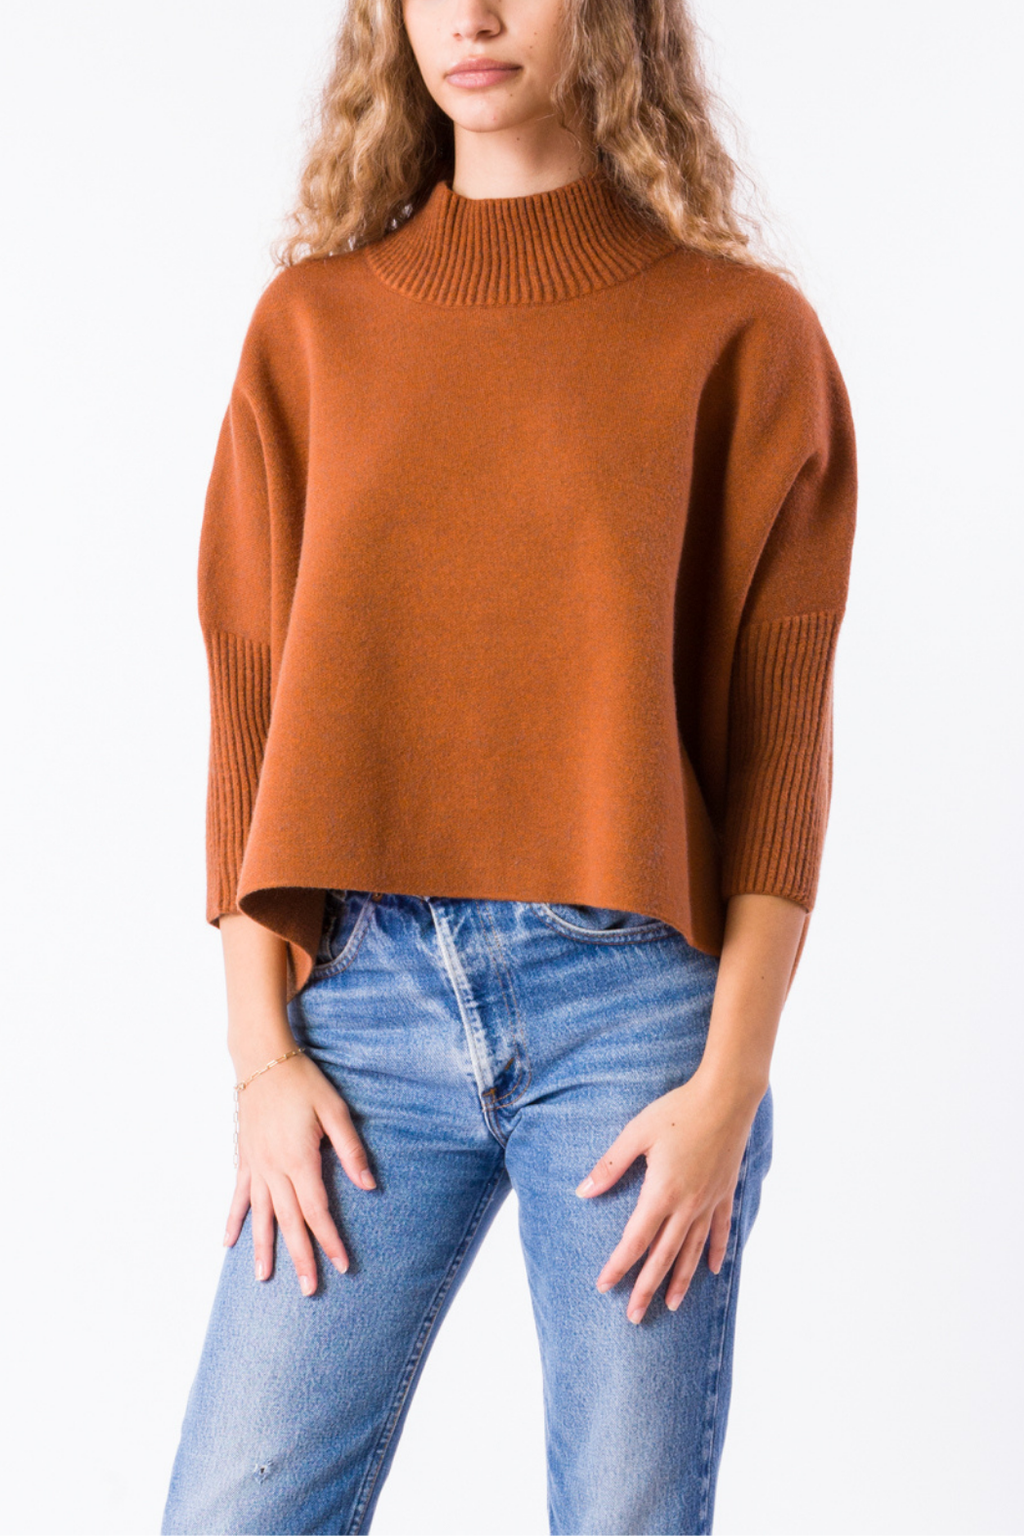 ECOVIBE Aja Crop Sweater in Cinnamon